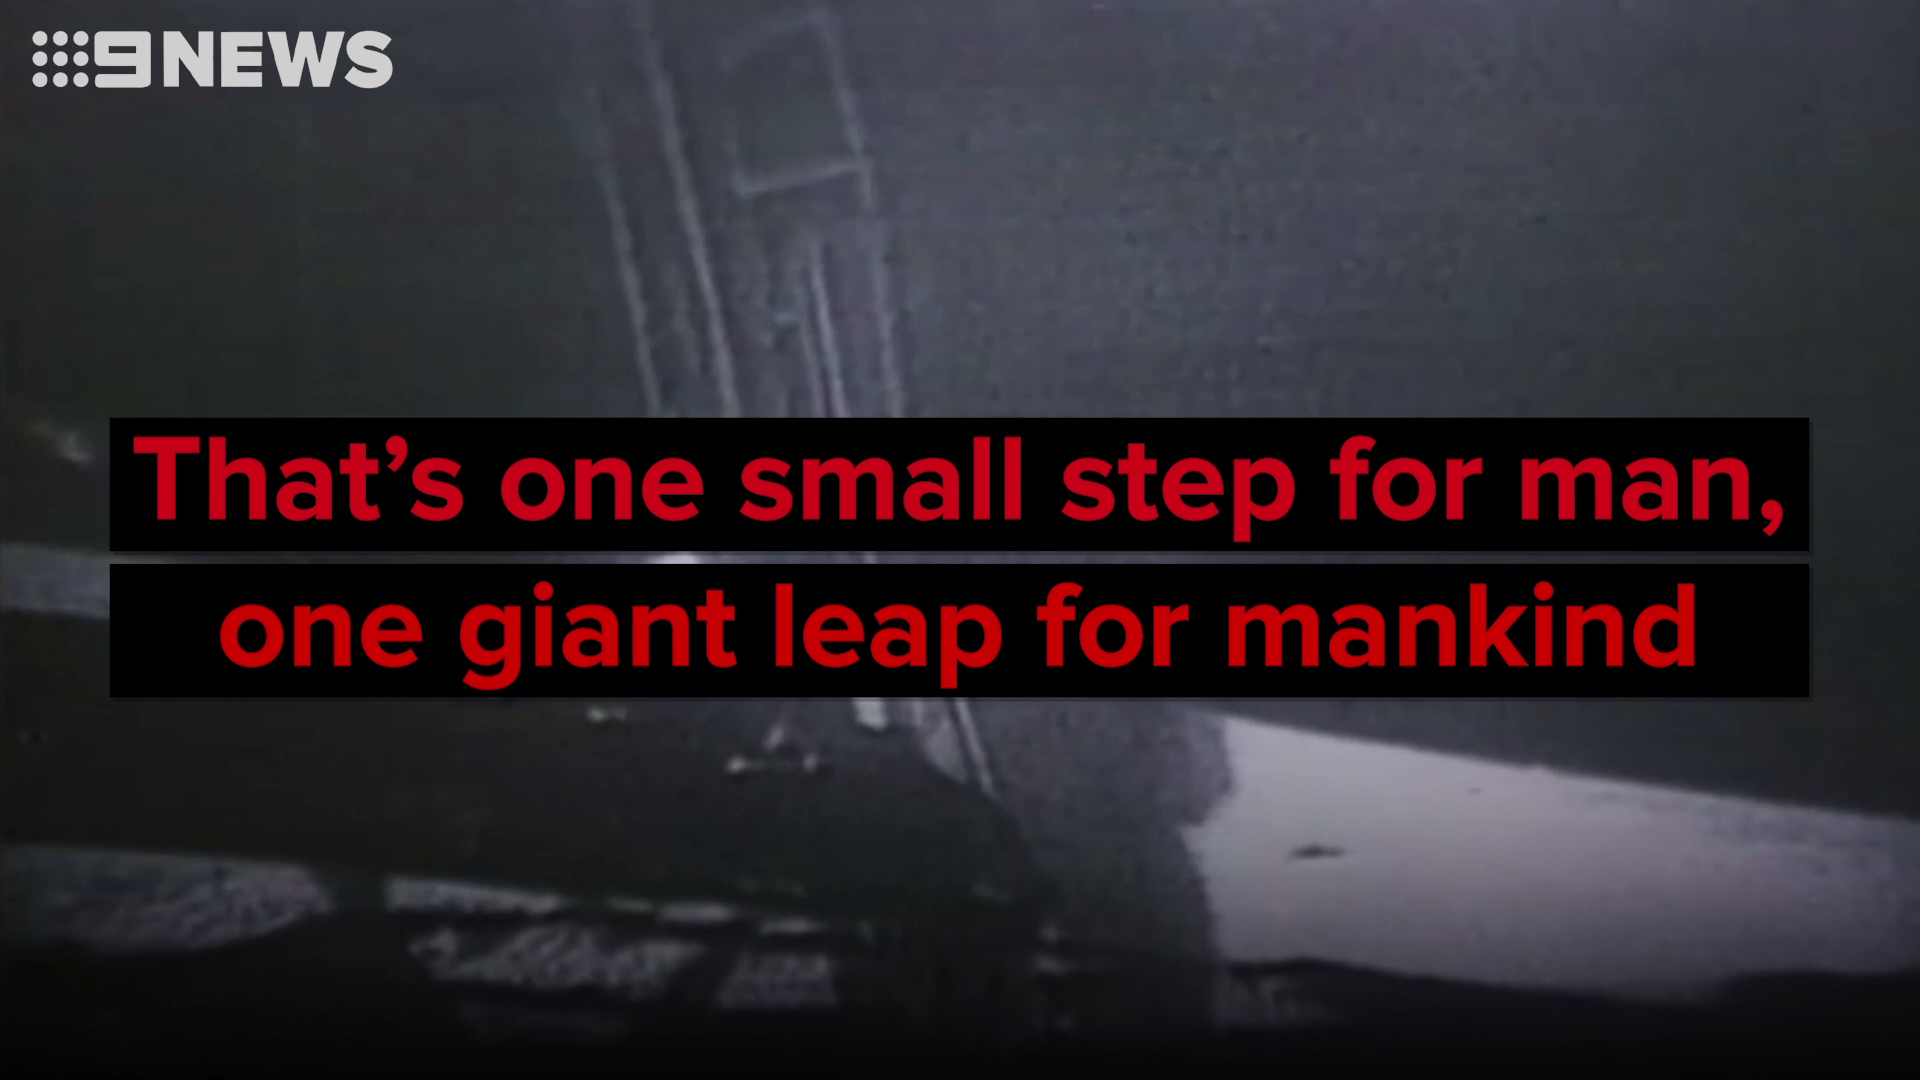 What did Neil Armstrong really say when he stepped onto the moon?